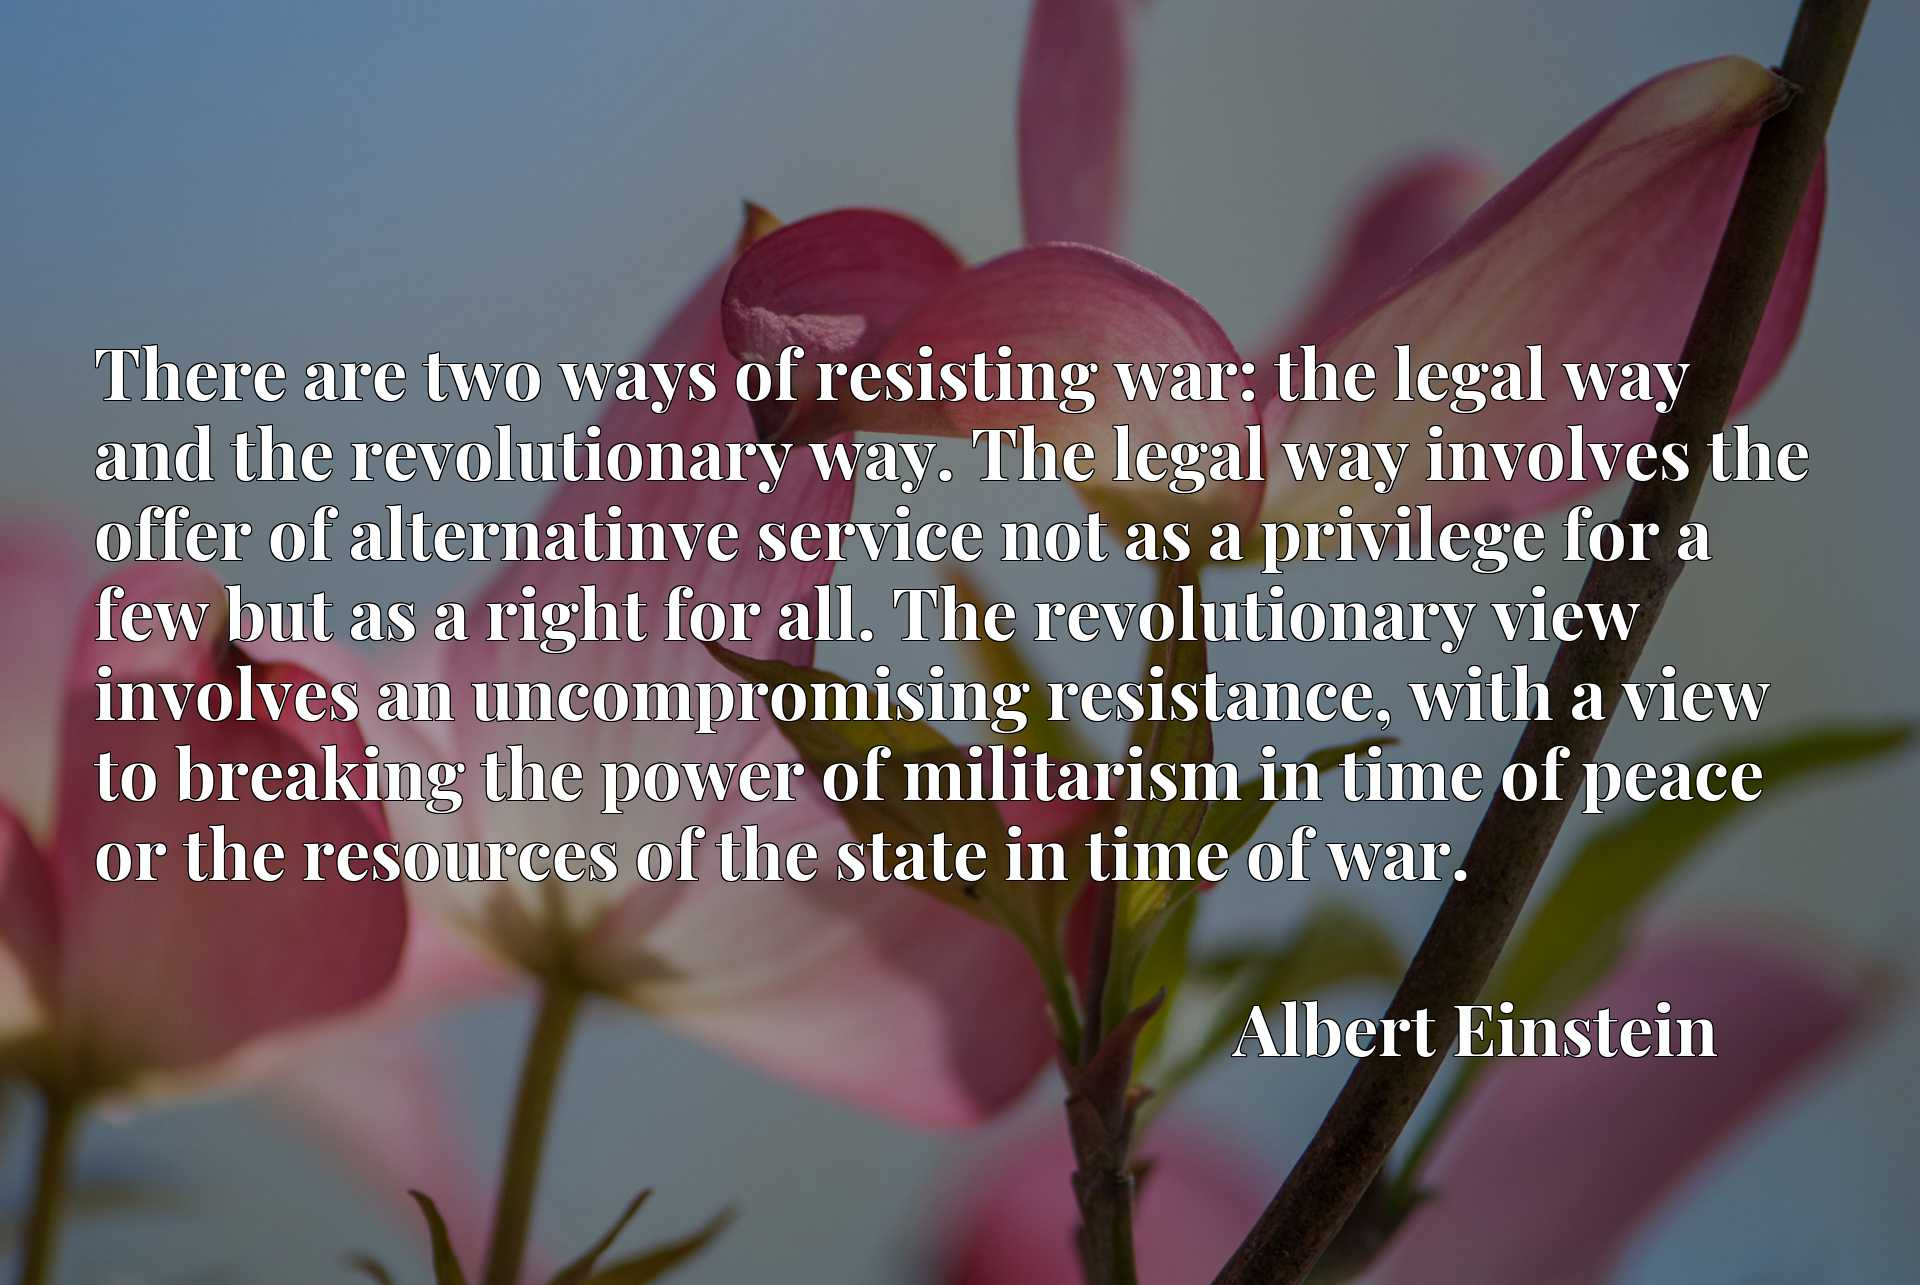 There are two ways of resisting war: the legal way and the revolutionary way. The legal way involves the offer of alternatinve service not as a privilege for a few but as a right for all. The revolutionary view involves an uncompromising resistance, with a view to breaking the power of militarism in time of peace or the resources of the state in time of war.